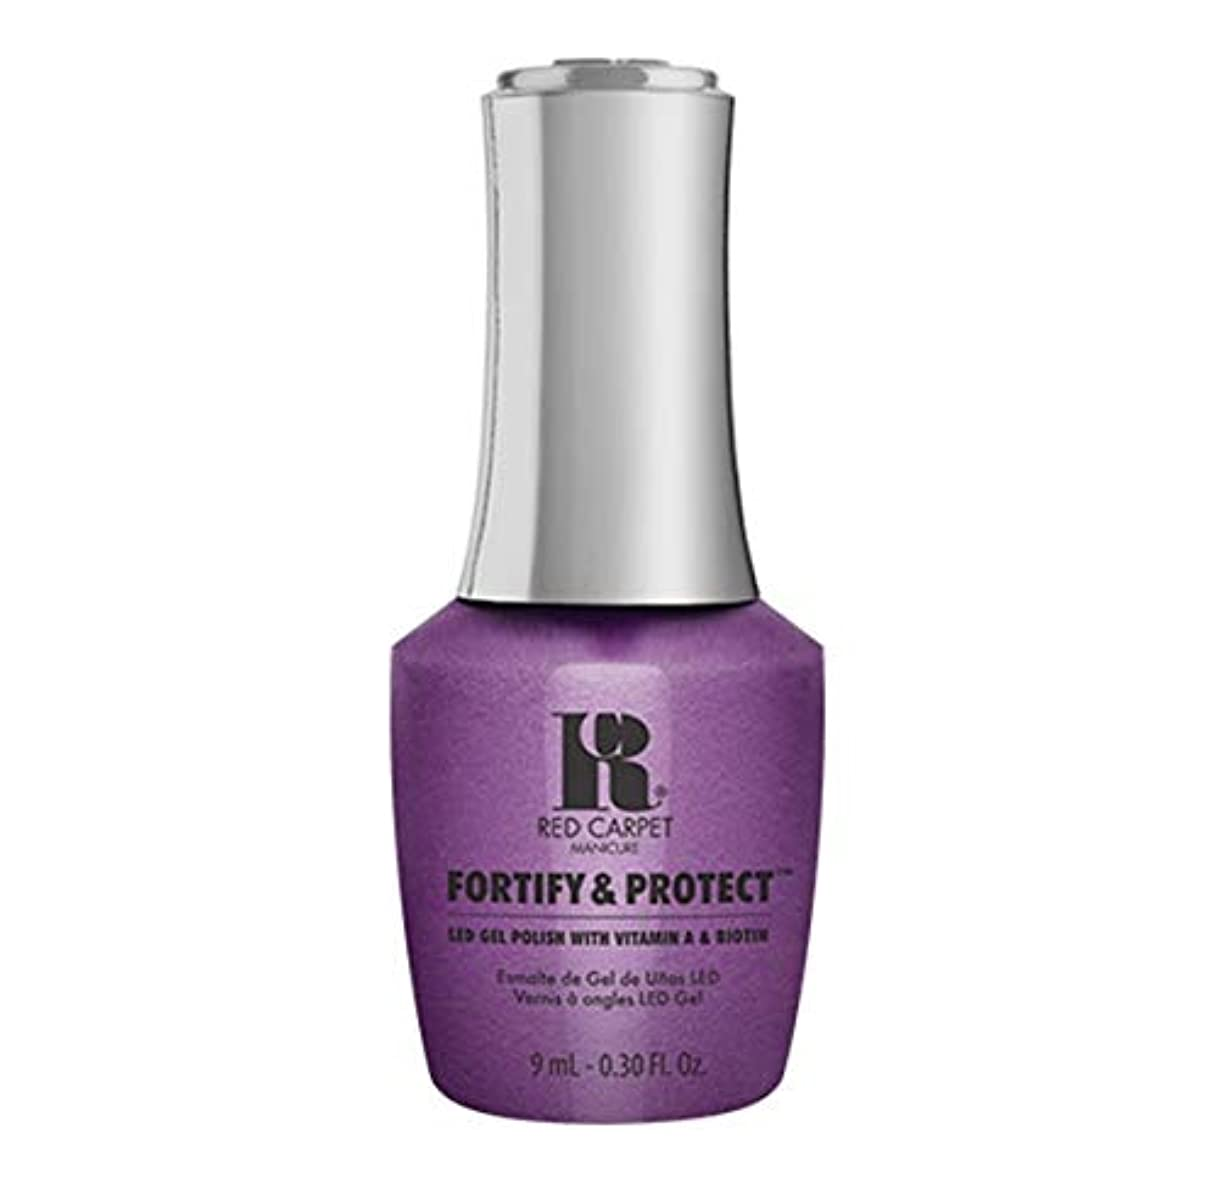 ボランティアエピソードニュージーランドRed Carpet Manicure - Fortify & Protect - The Magic Hour - 9ml / 0.30oz